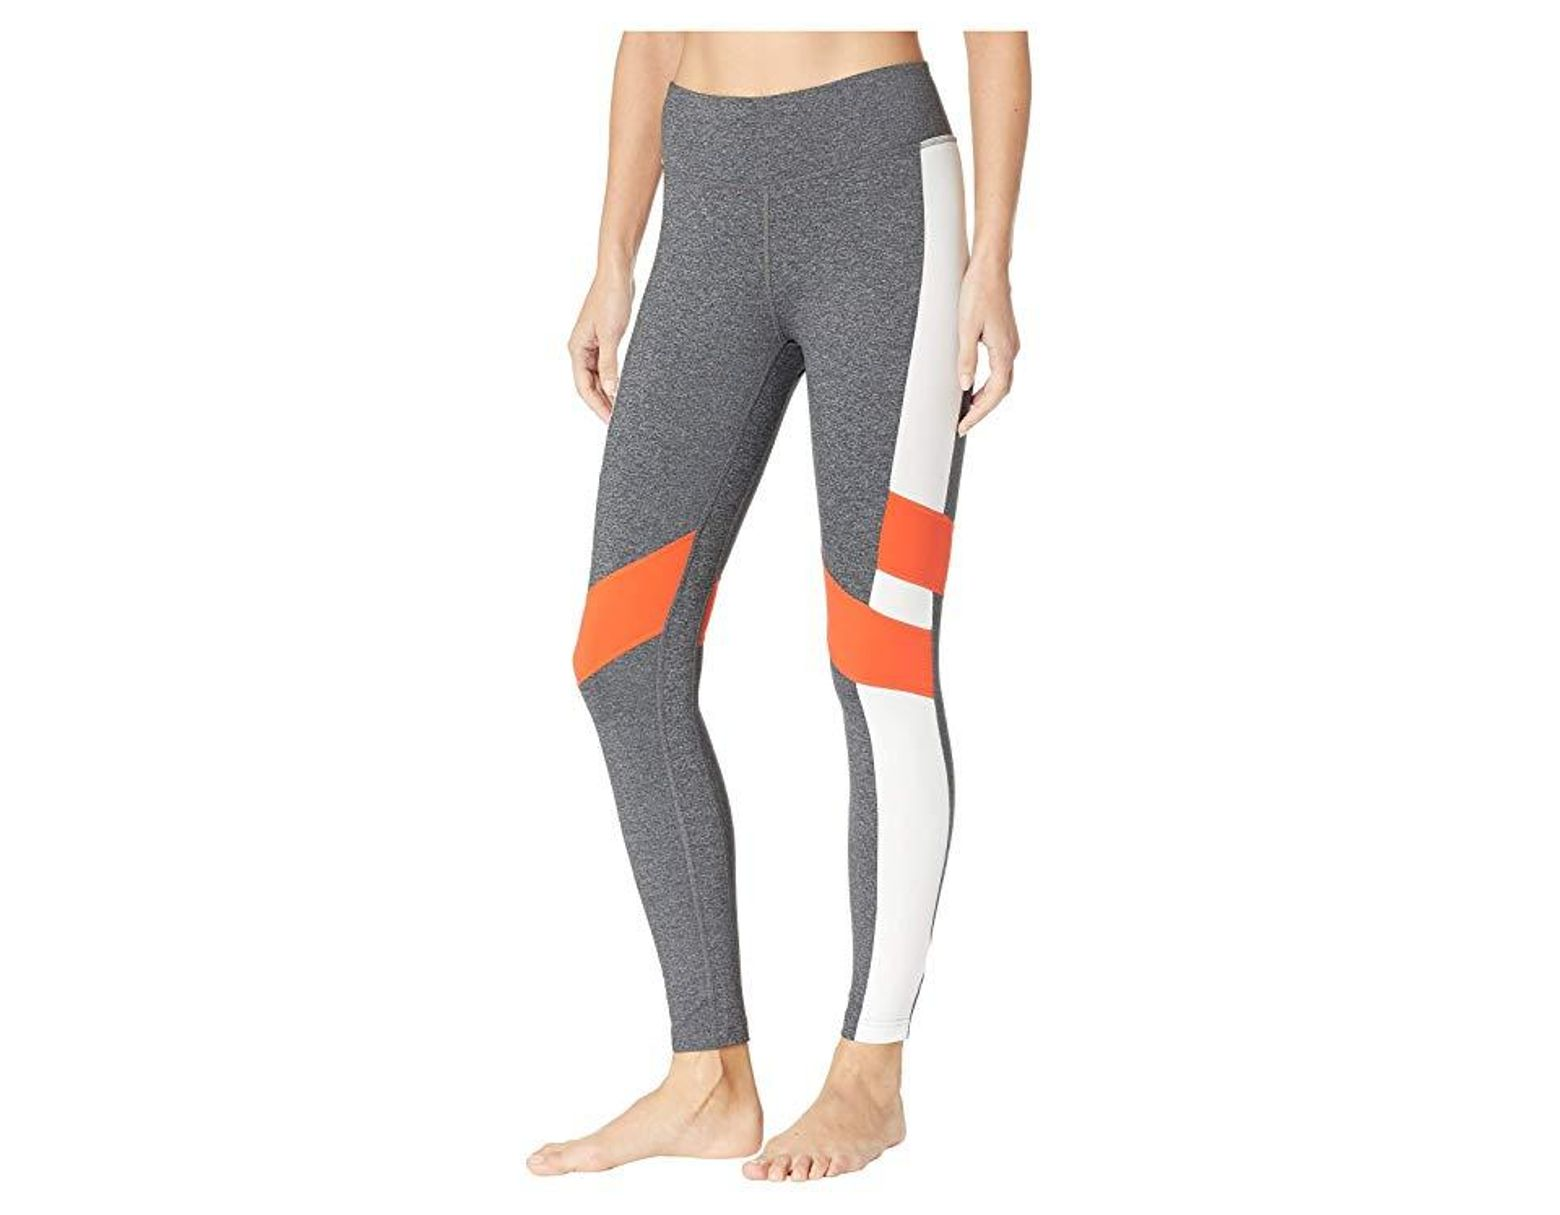 62dbe903841591 Reebok Lux Tights - Color Block (dark Grey Heather) Workout in Gray - Save  15% - Lyst